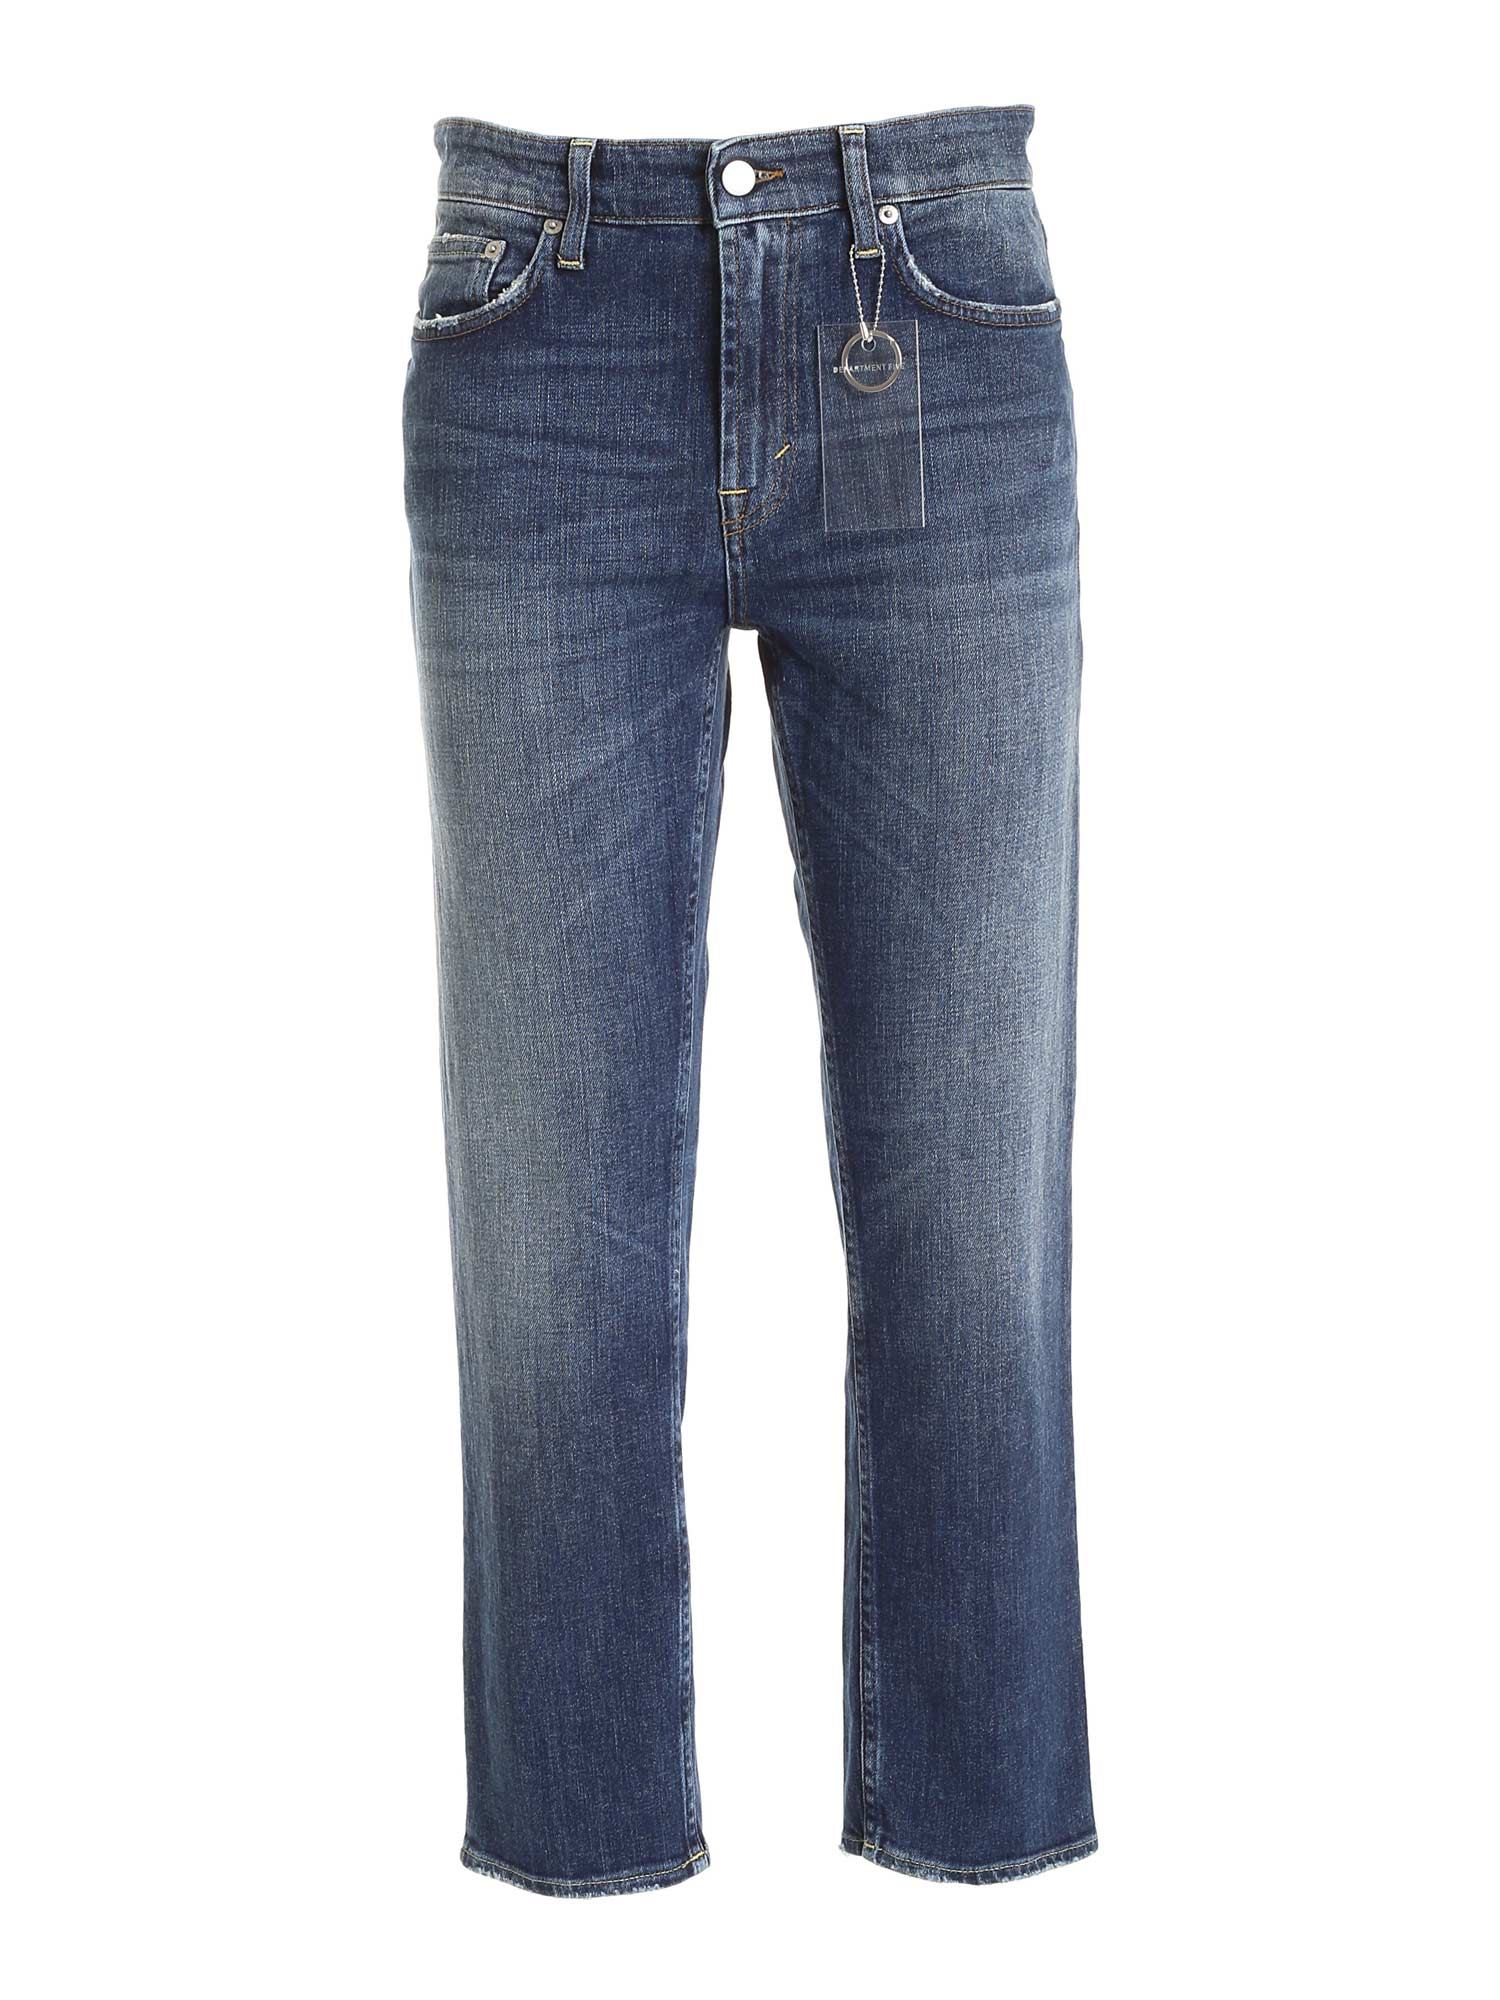 Department 5 TAMA FADED JEANS IN BLUE